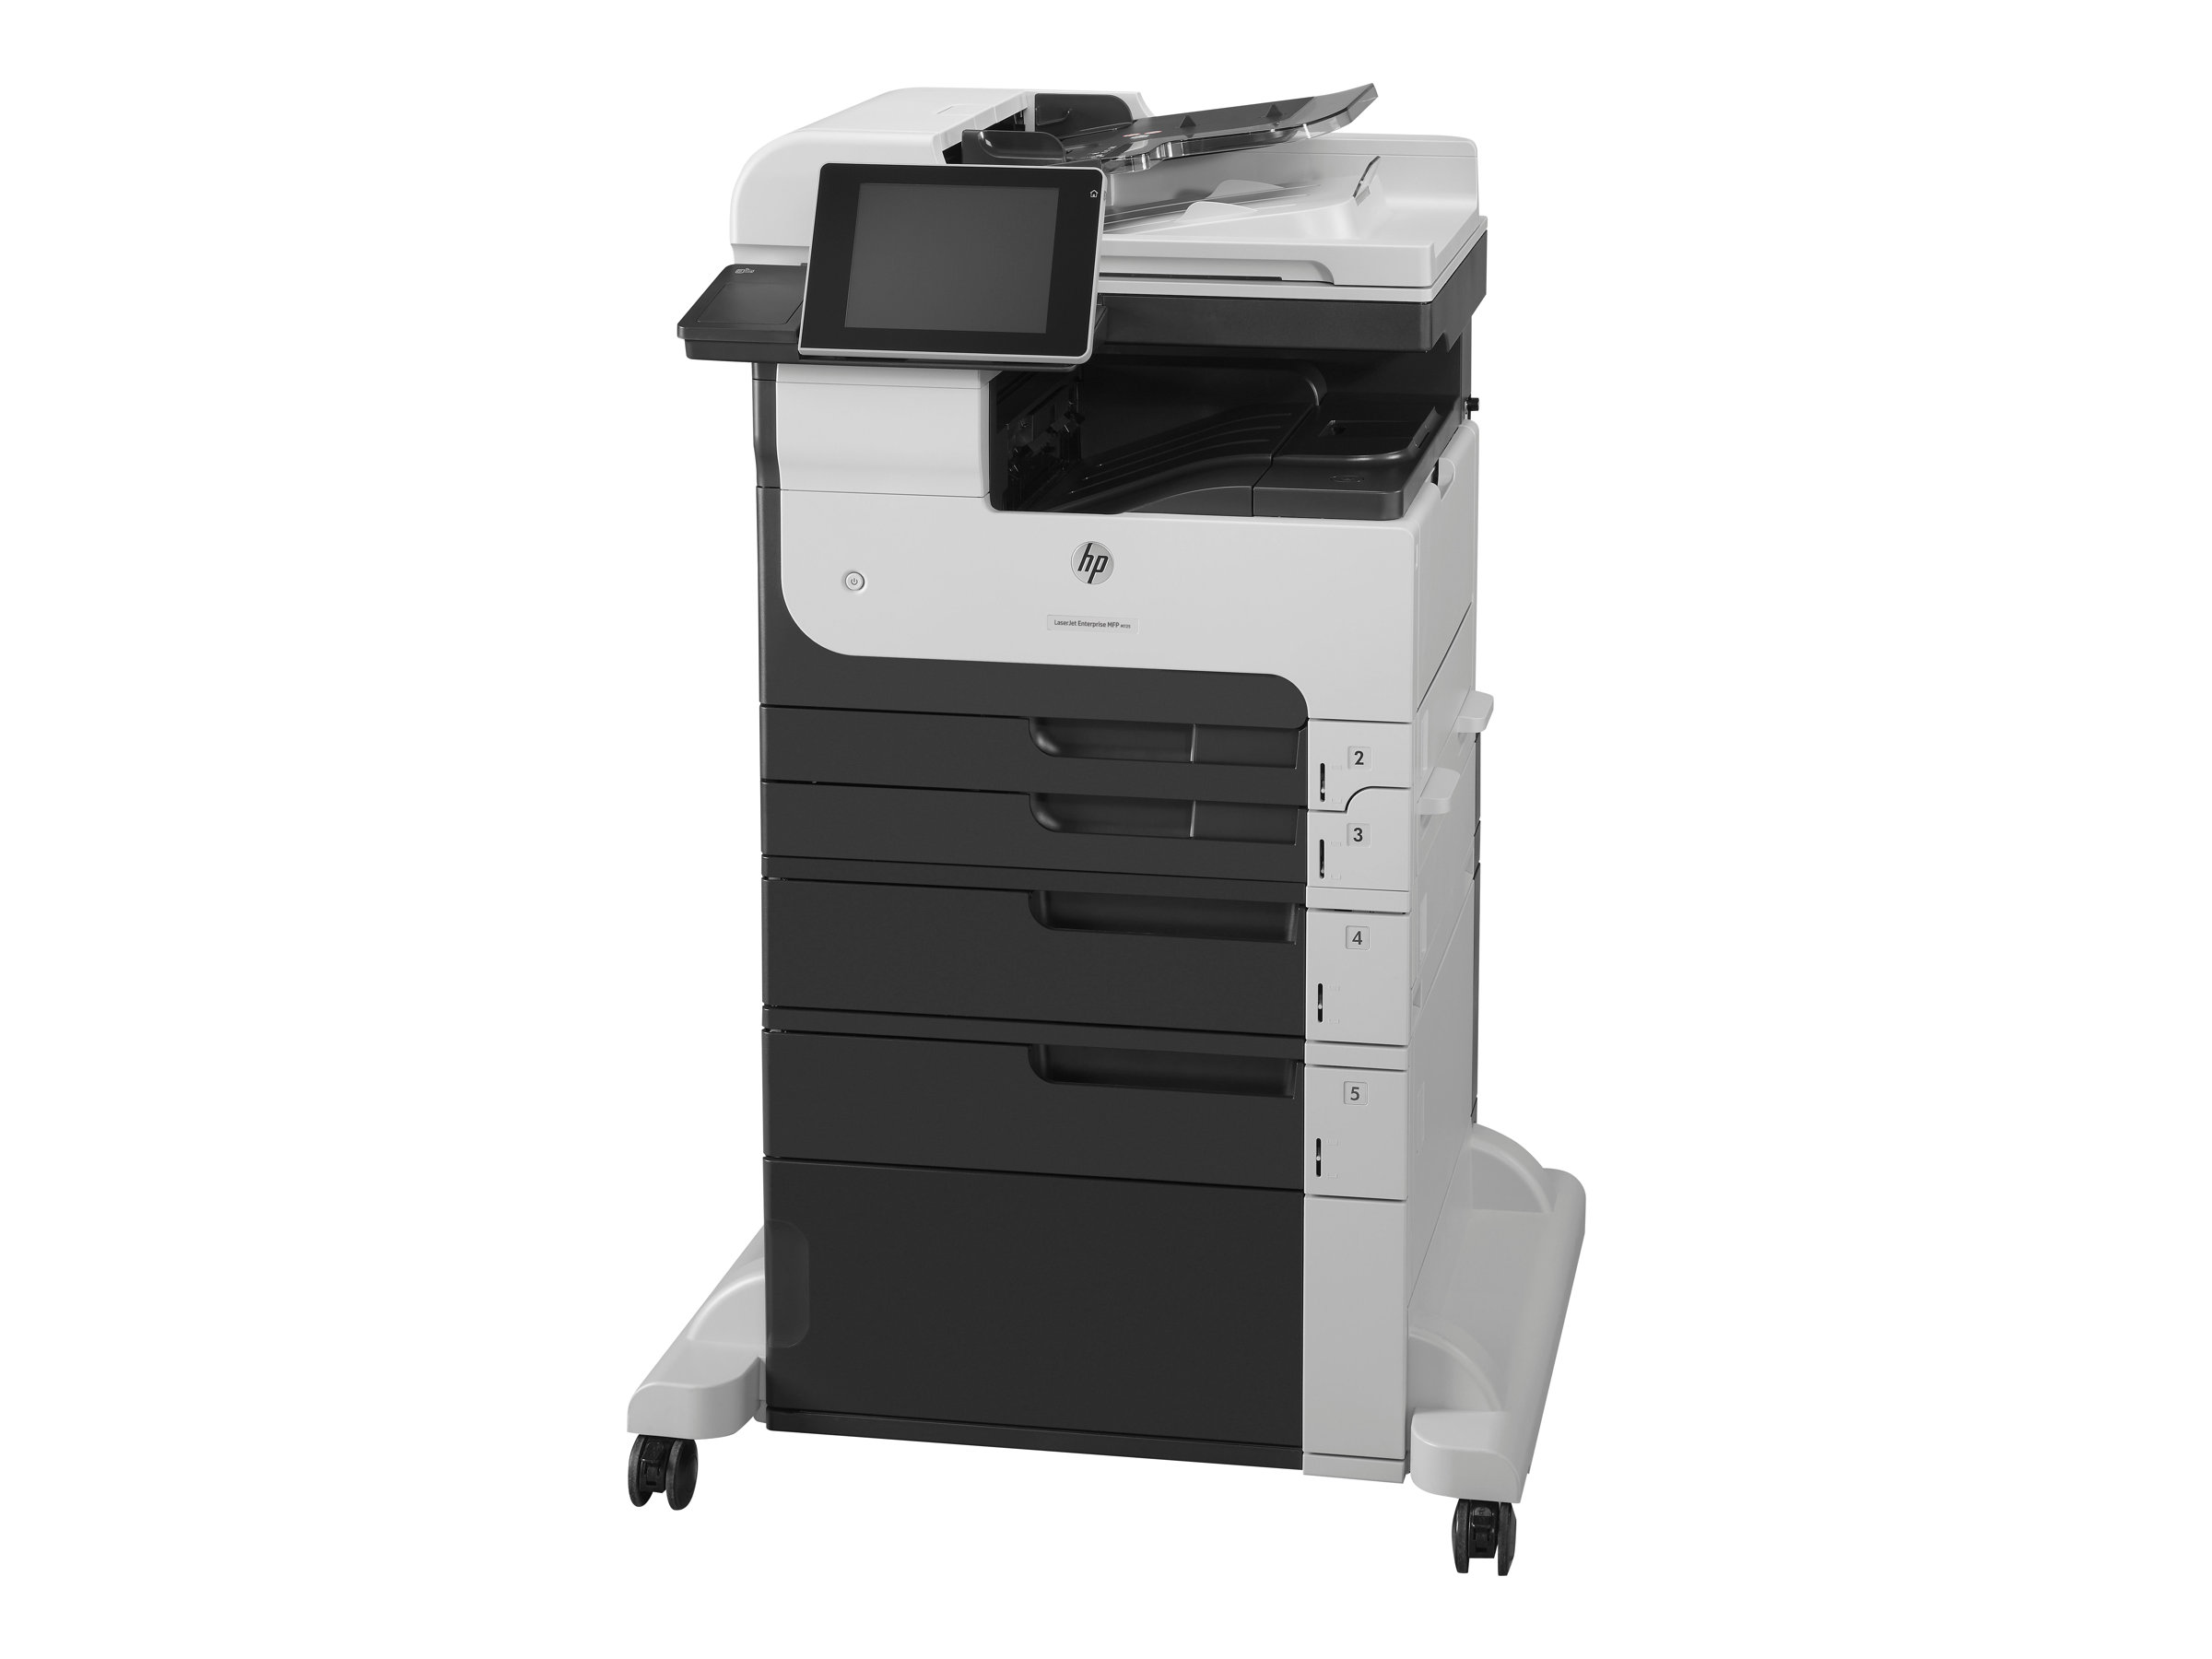 HP LaserJet Enterprise MFP M725f - Multifunktionsdrucker - s/w - Laser - A3 (297 x 420 mm) (Original) - A3/Ledger (Medien)